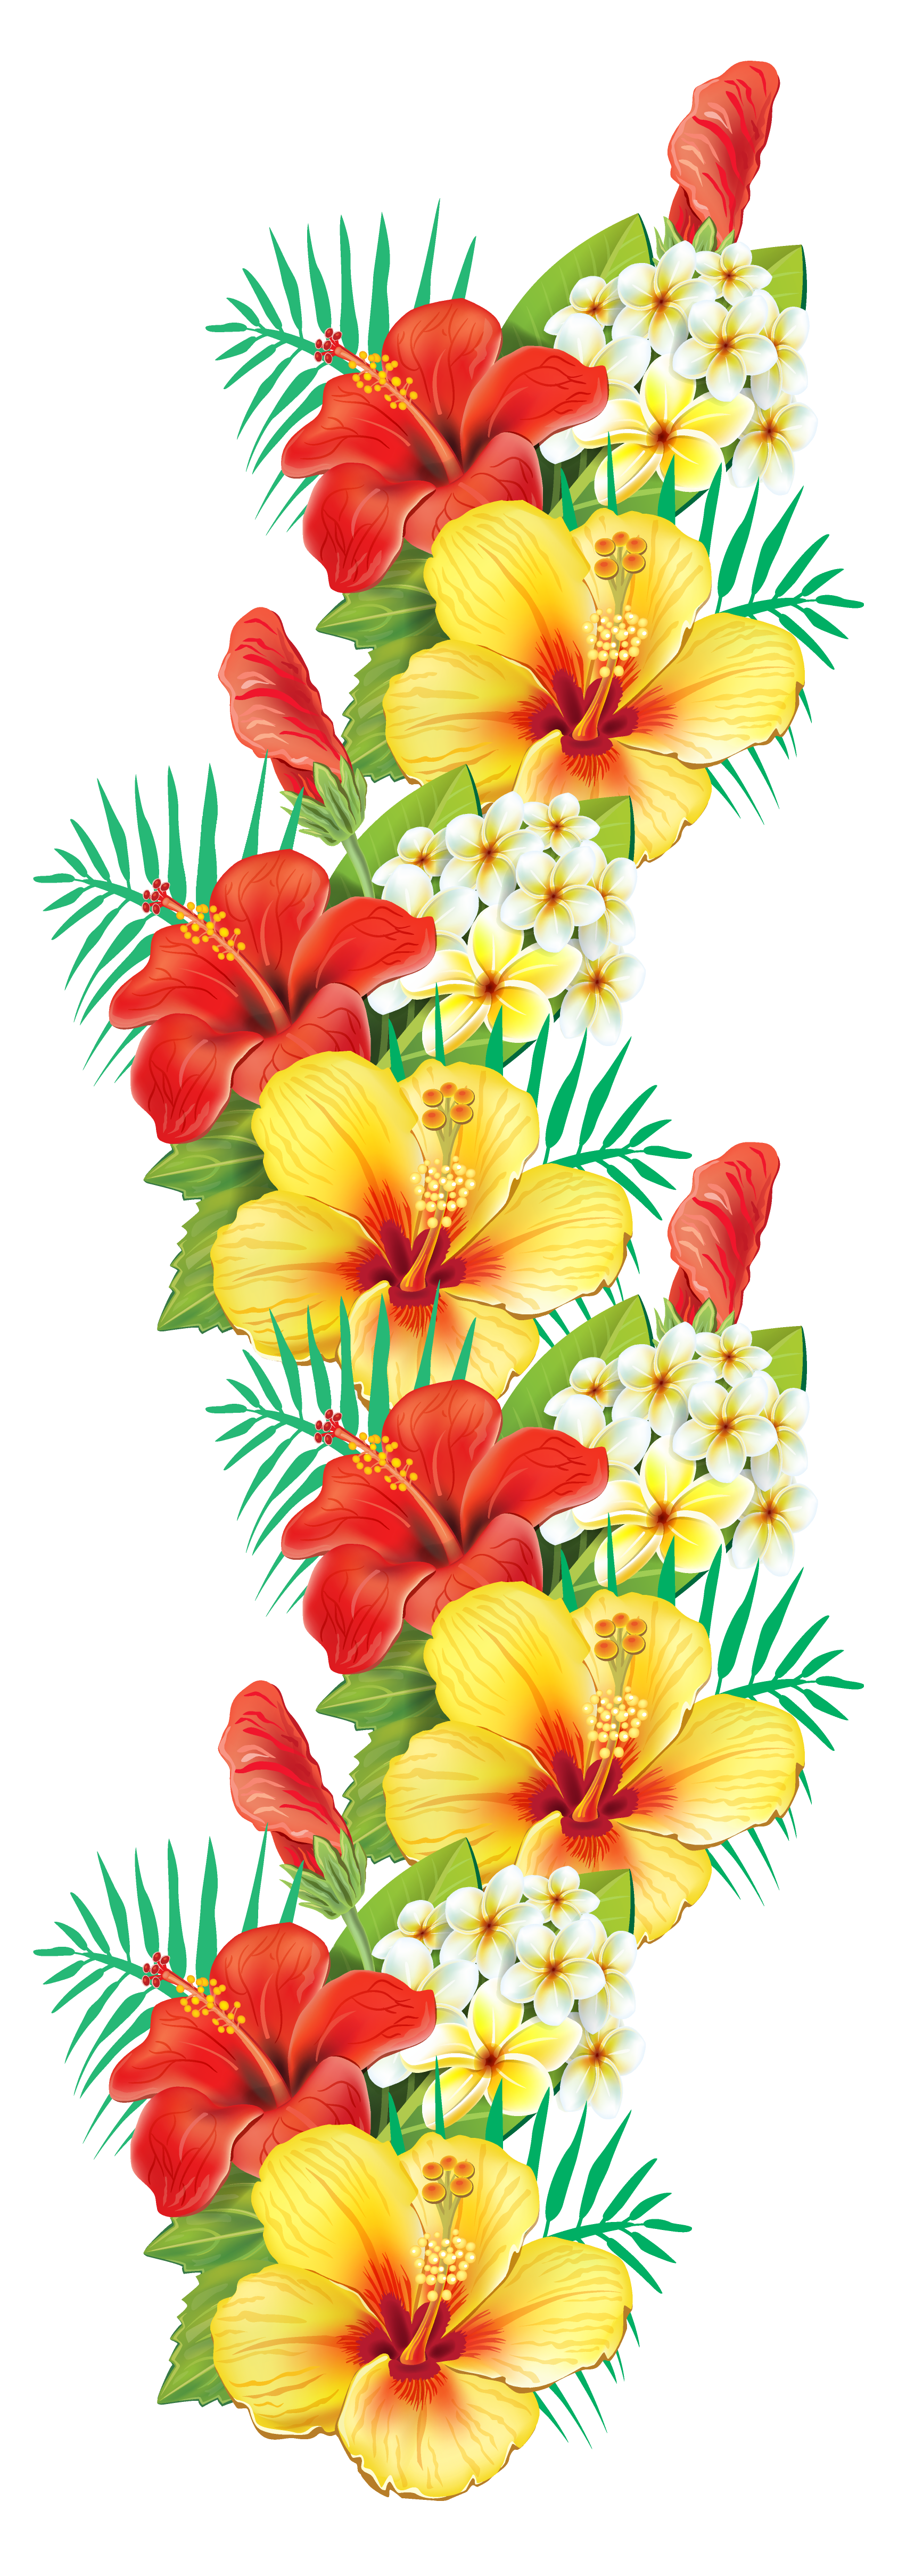 Free pictures of exotic flowers clipart transparent library Tropical Flower Clip Art Free - The Best Flowers Ideas clipart transparent library